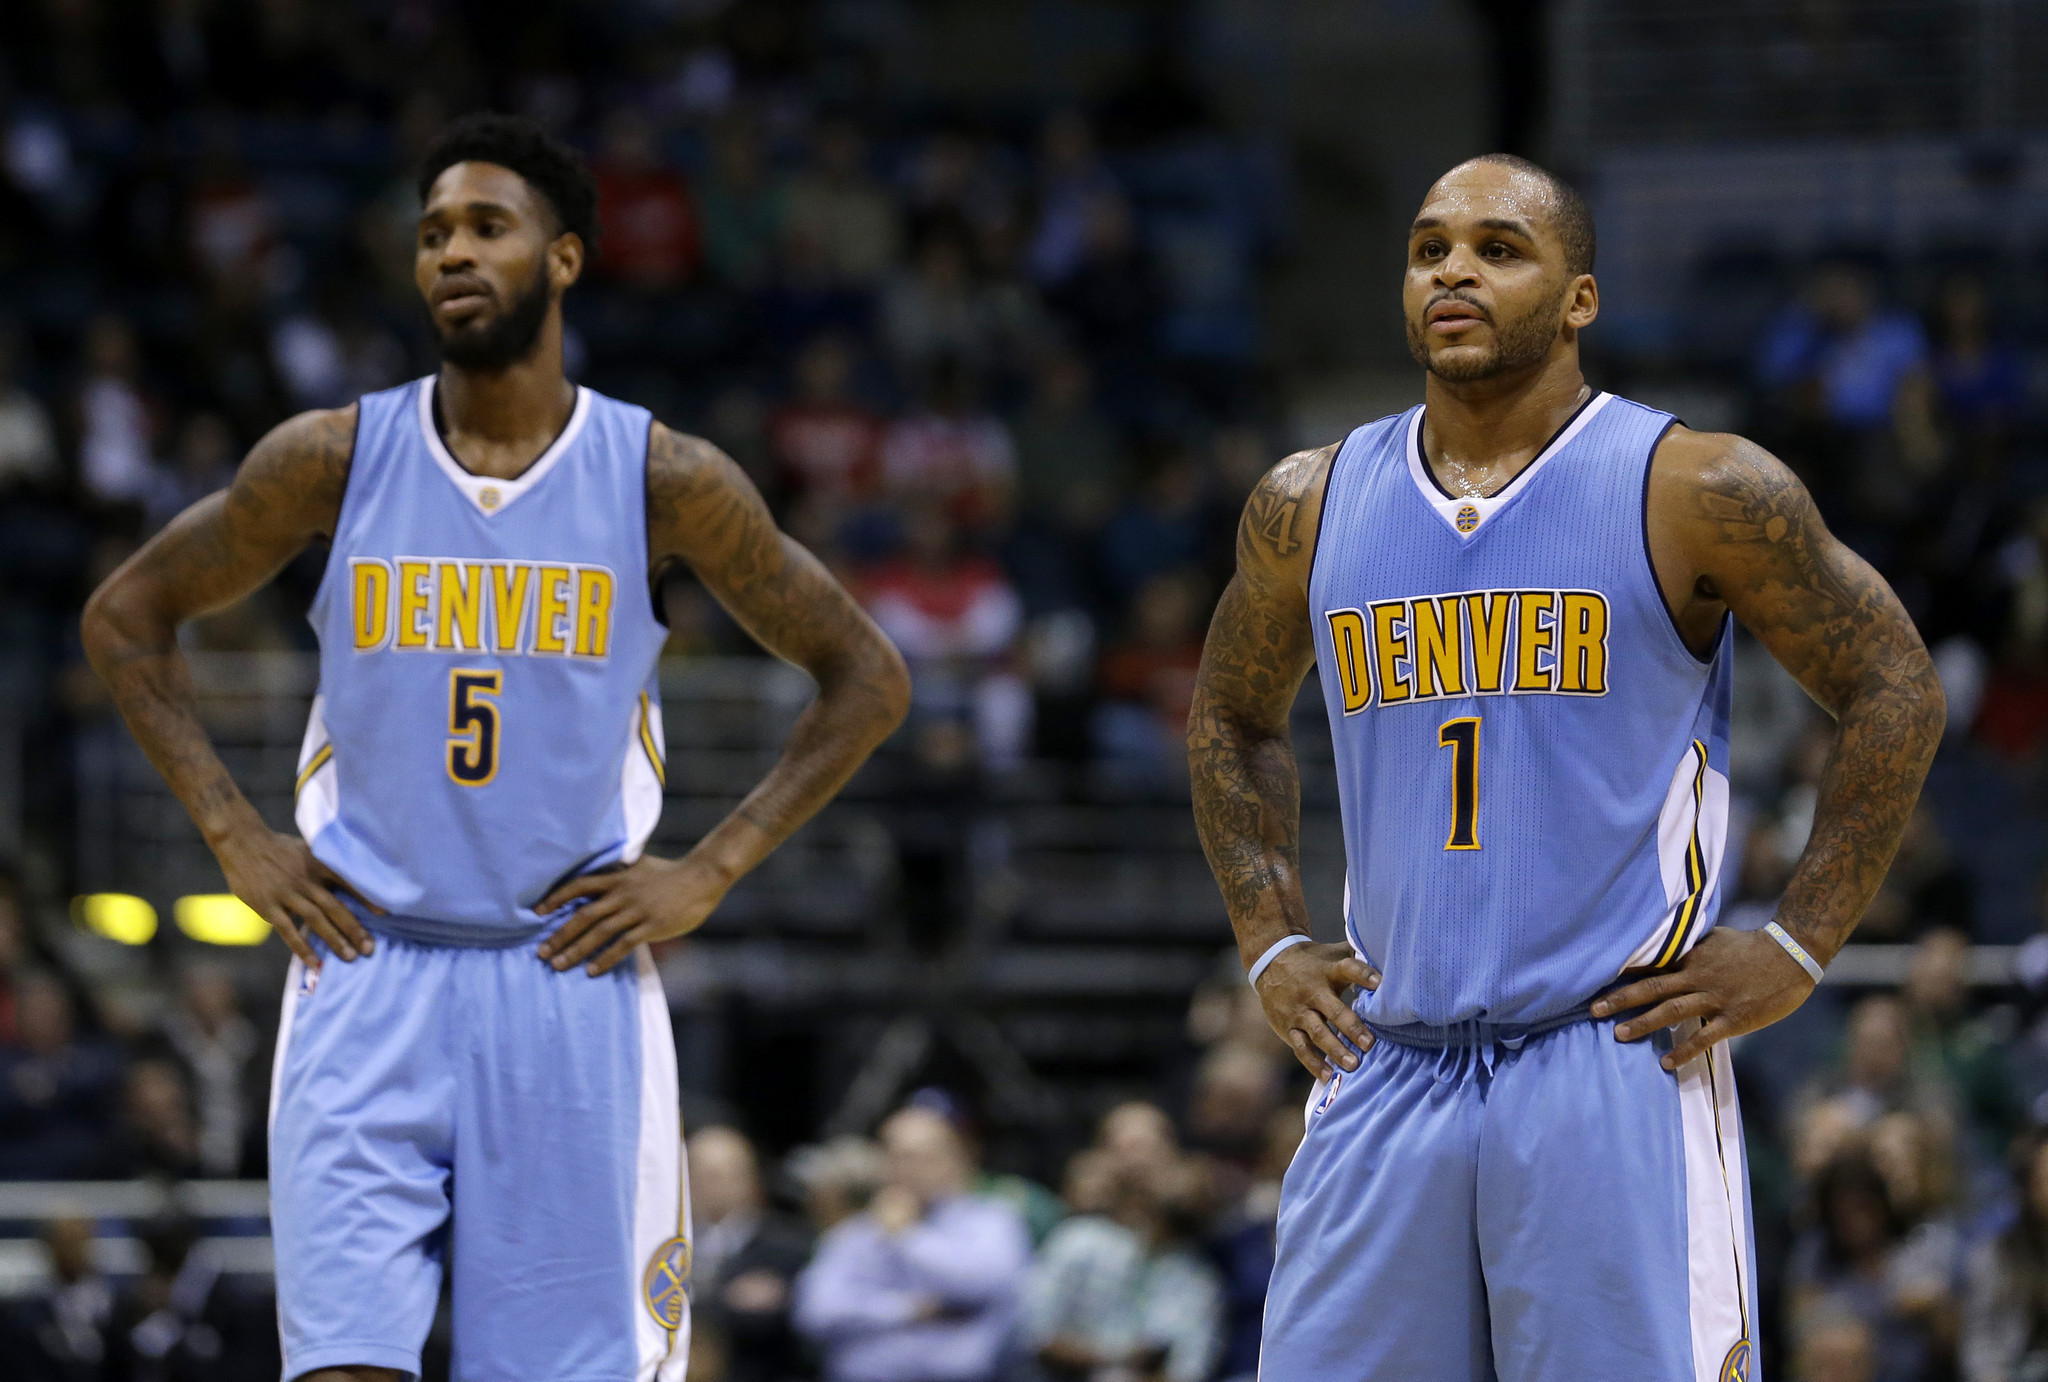 Former Orlando Magic point guard Jameer Nelson is enjoying more